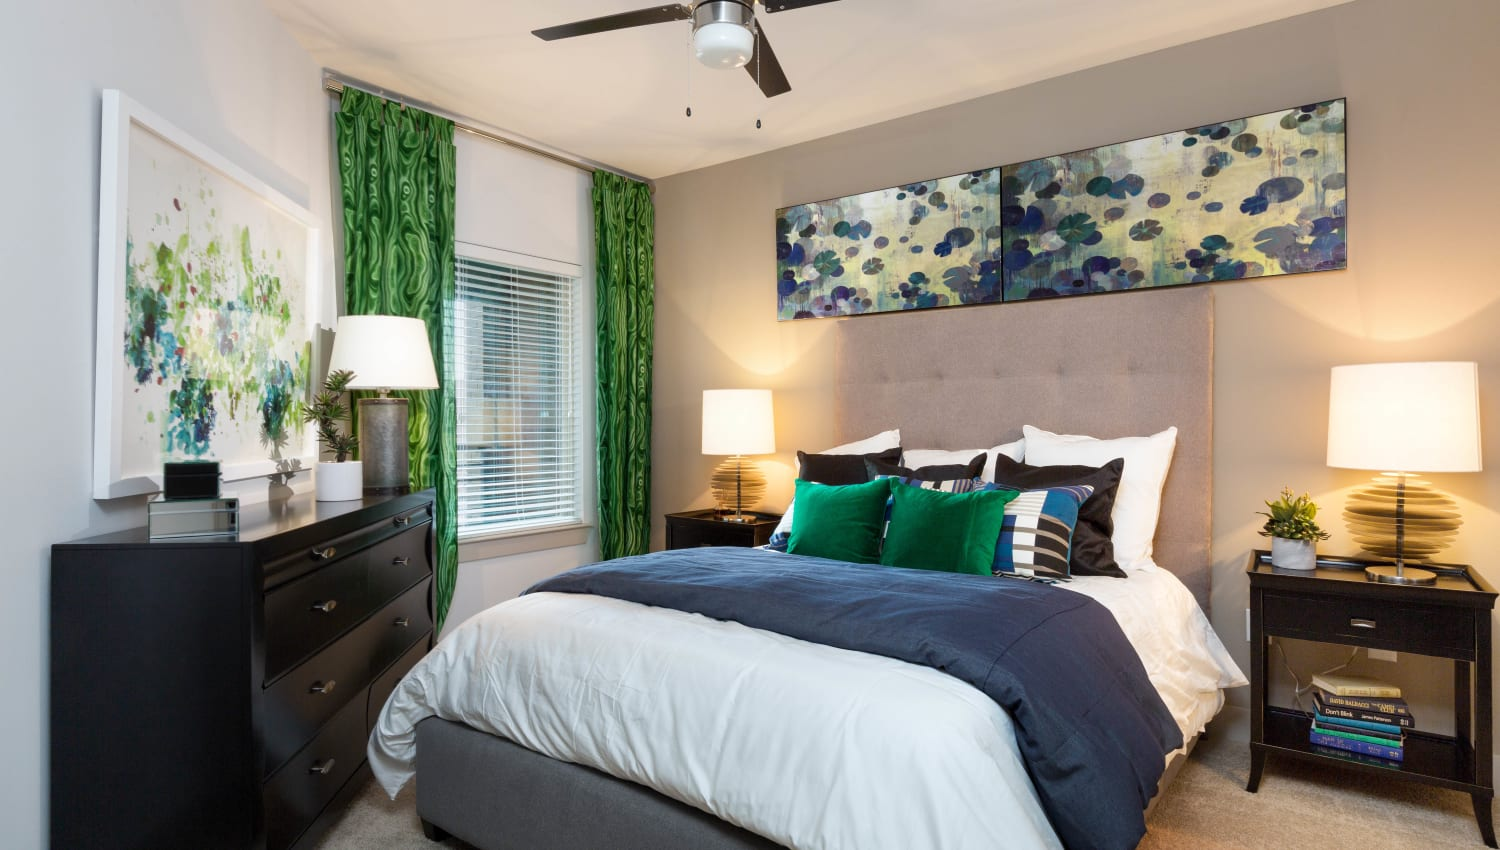 Ceiling fan and plush carpeting in a model home's bedroom at The Davis in Fort Worth, Texas